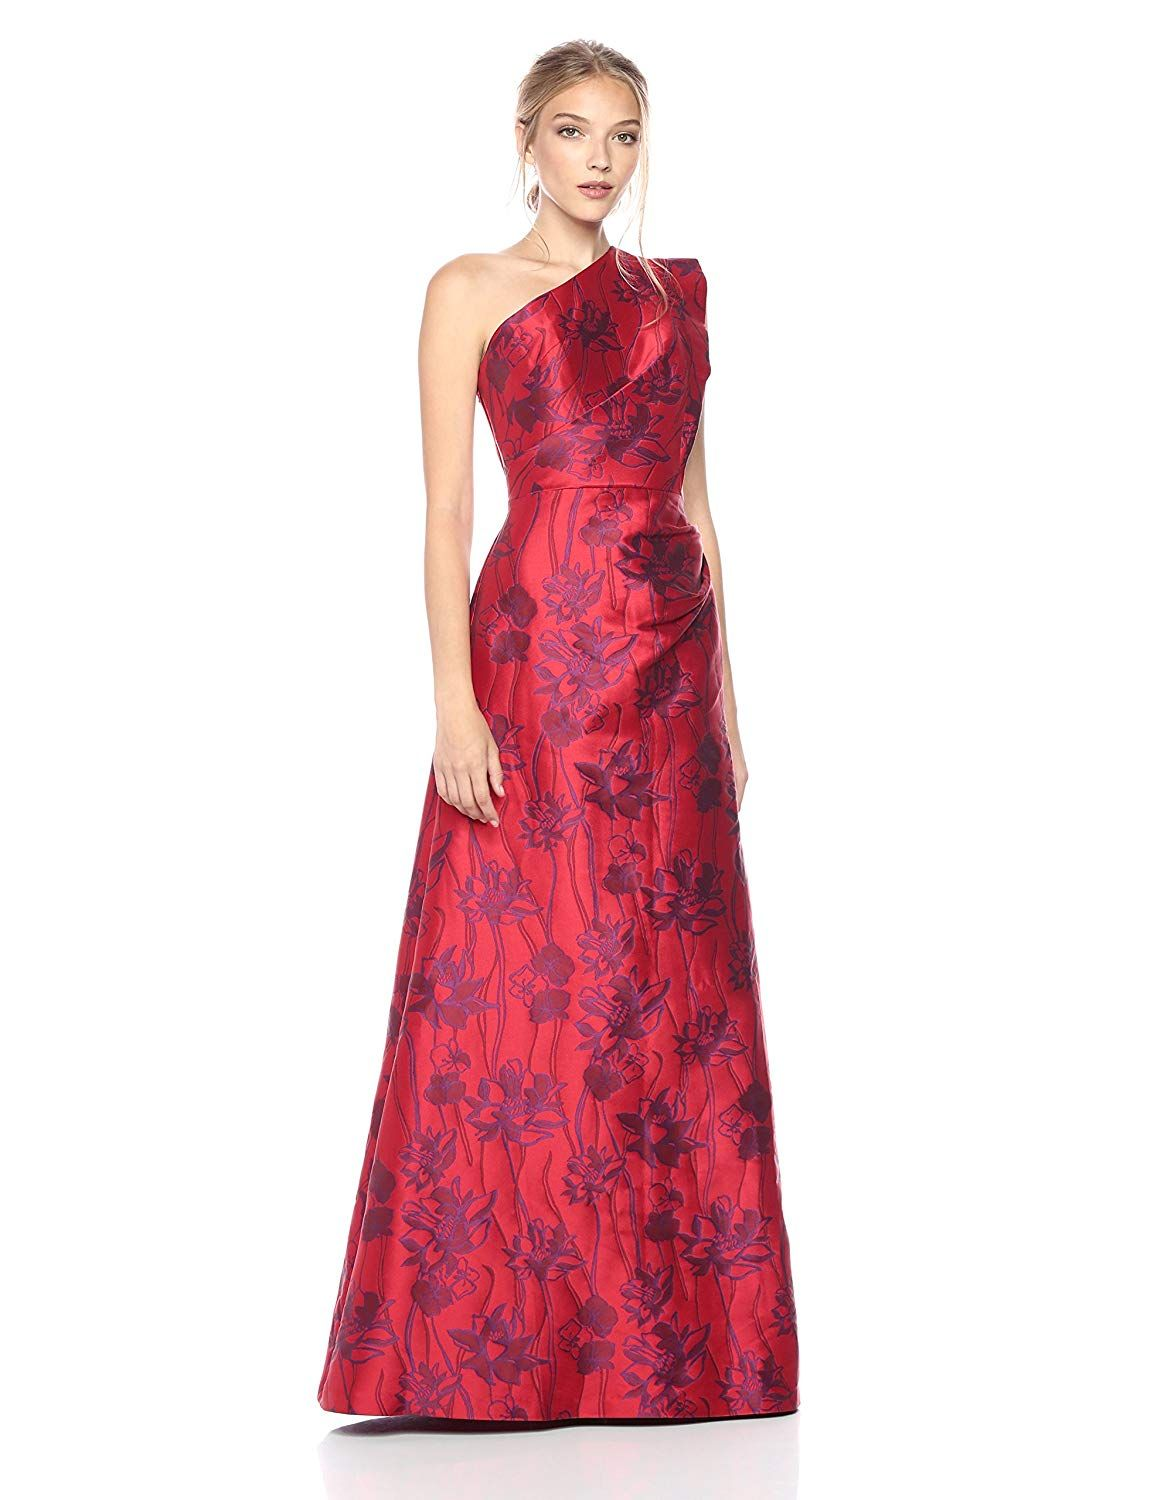 292dbfc4959 ML Monique Lhuillier Women s One Shoulder Floral Gown one shoulder sexy hot  red dress for her